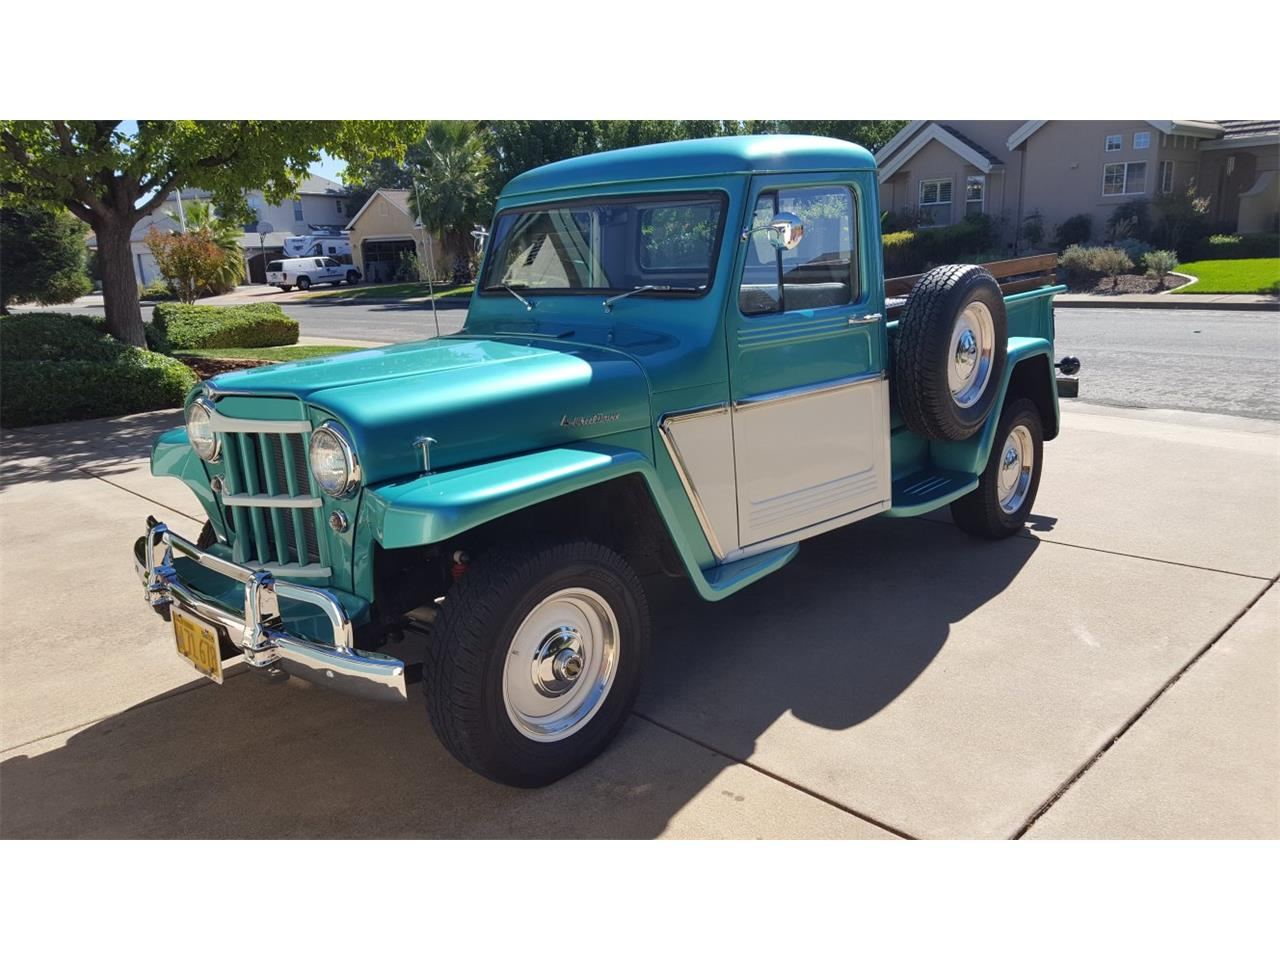 Large Picture of 1962 Willys Pickup - $27,000.00 Offered by a Private Seller - GN2B